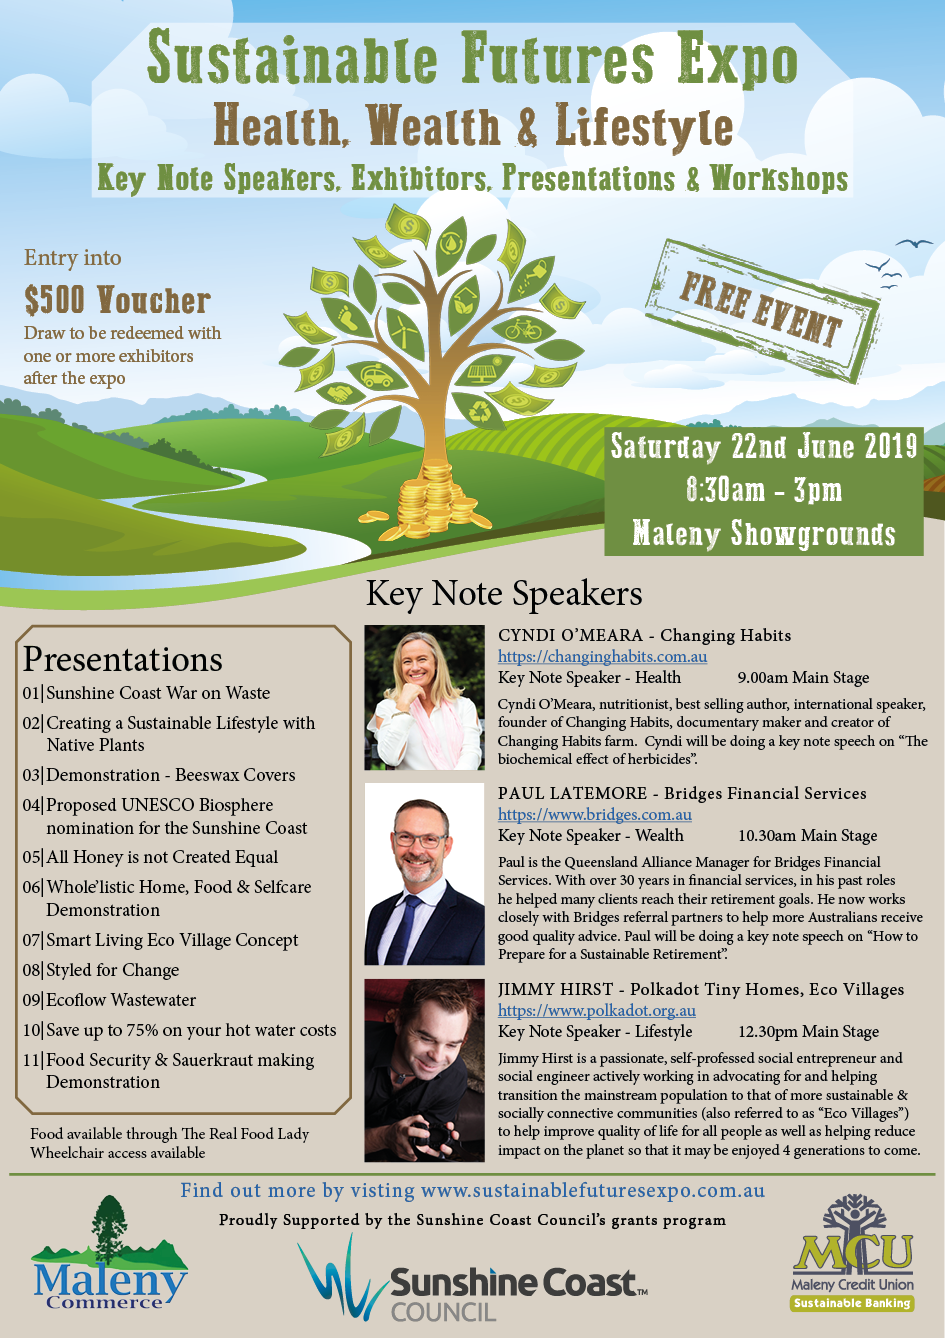 News | About | Sustainable Futures Expo | Maleny